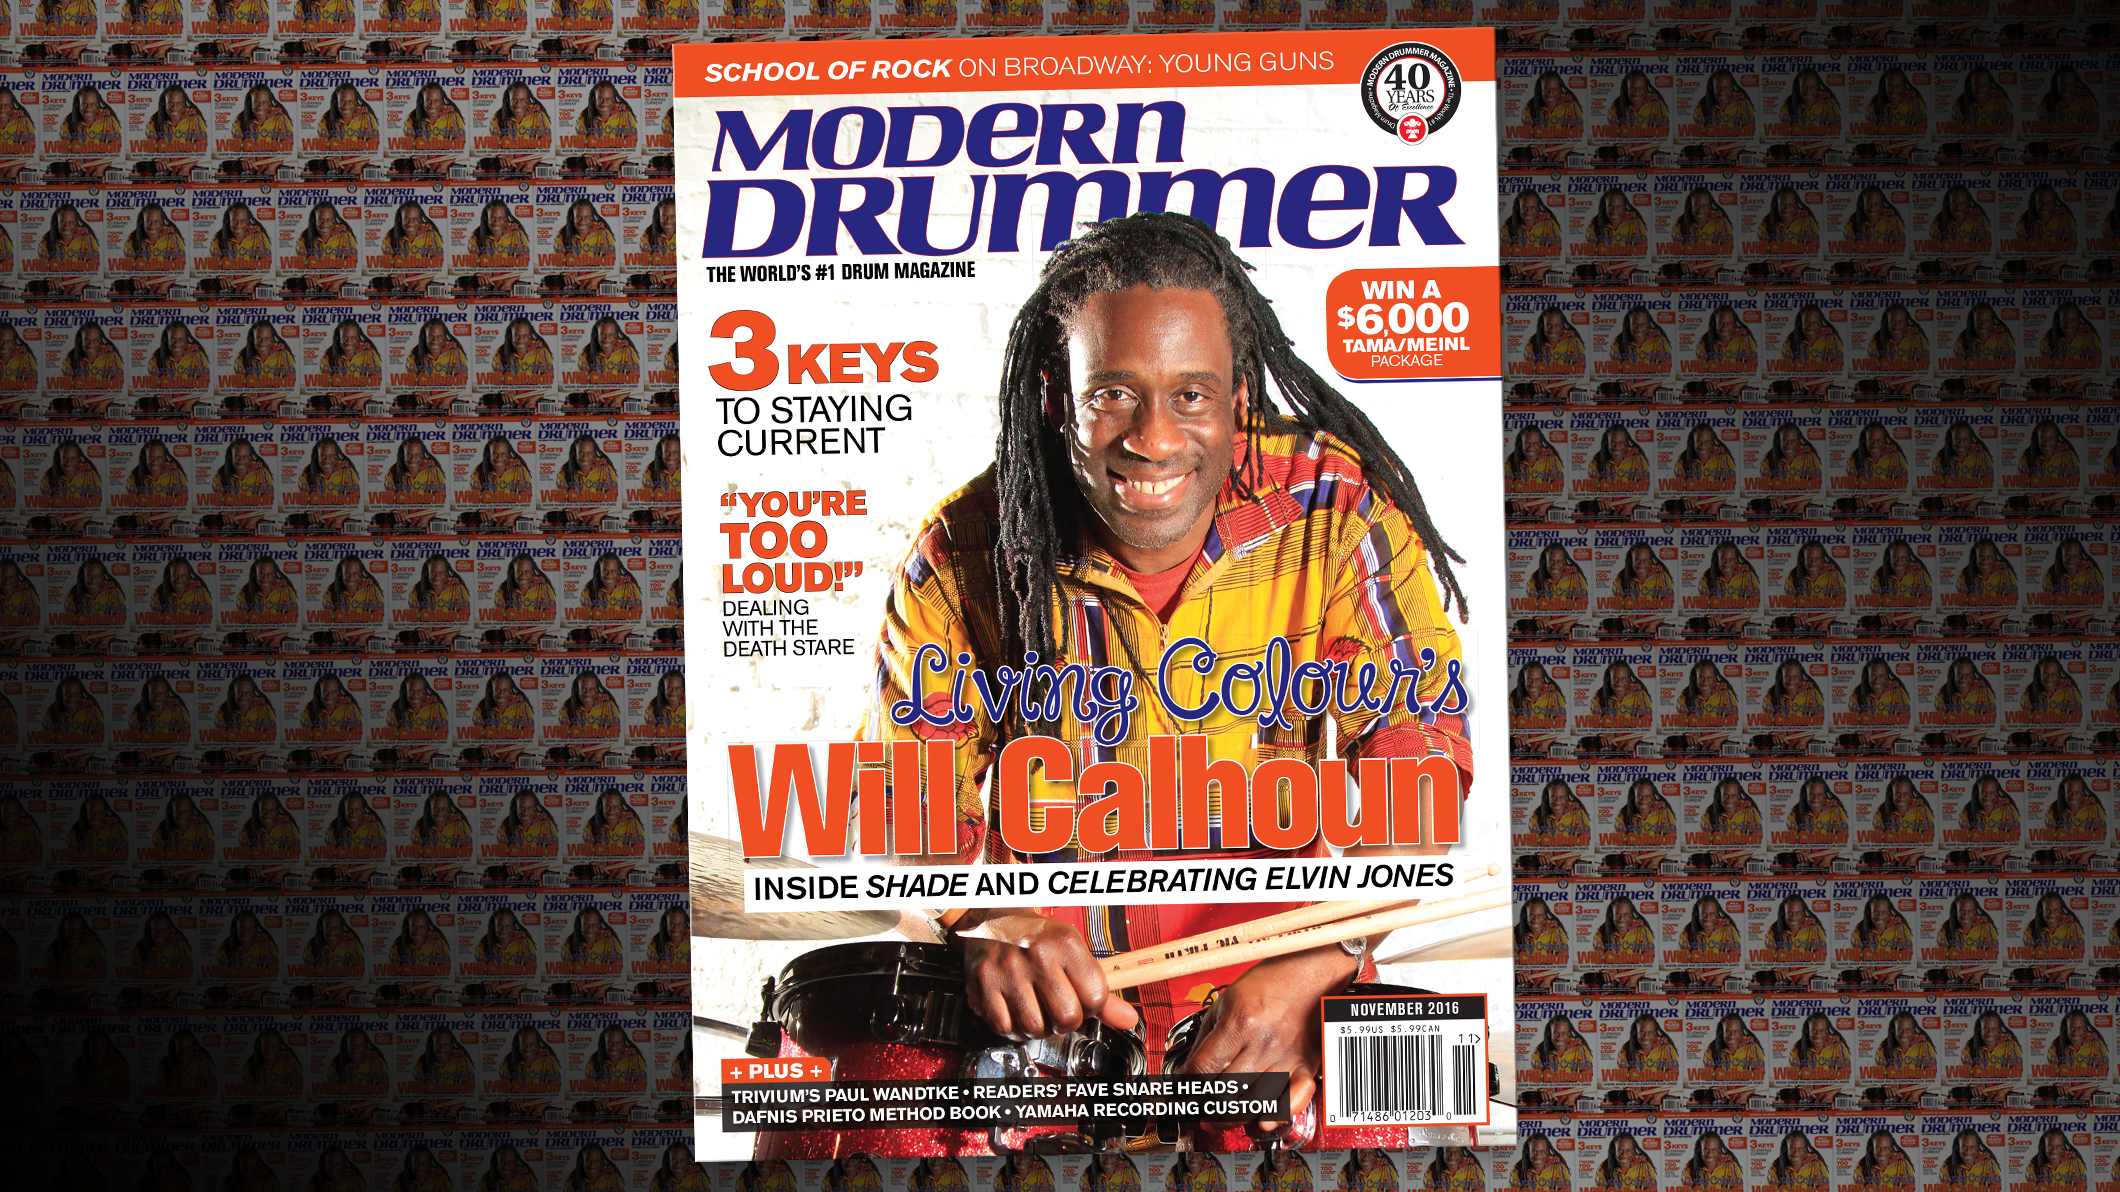 November 2016 Issue of Modern Drummer magazine featuring Living Colour's Will Calhoun